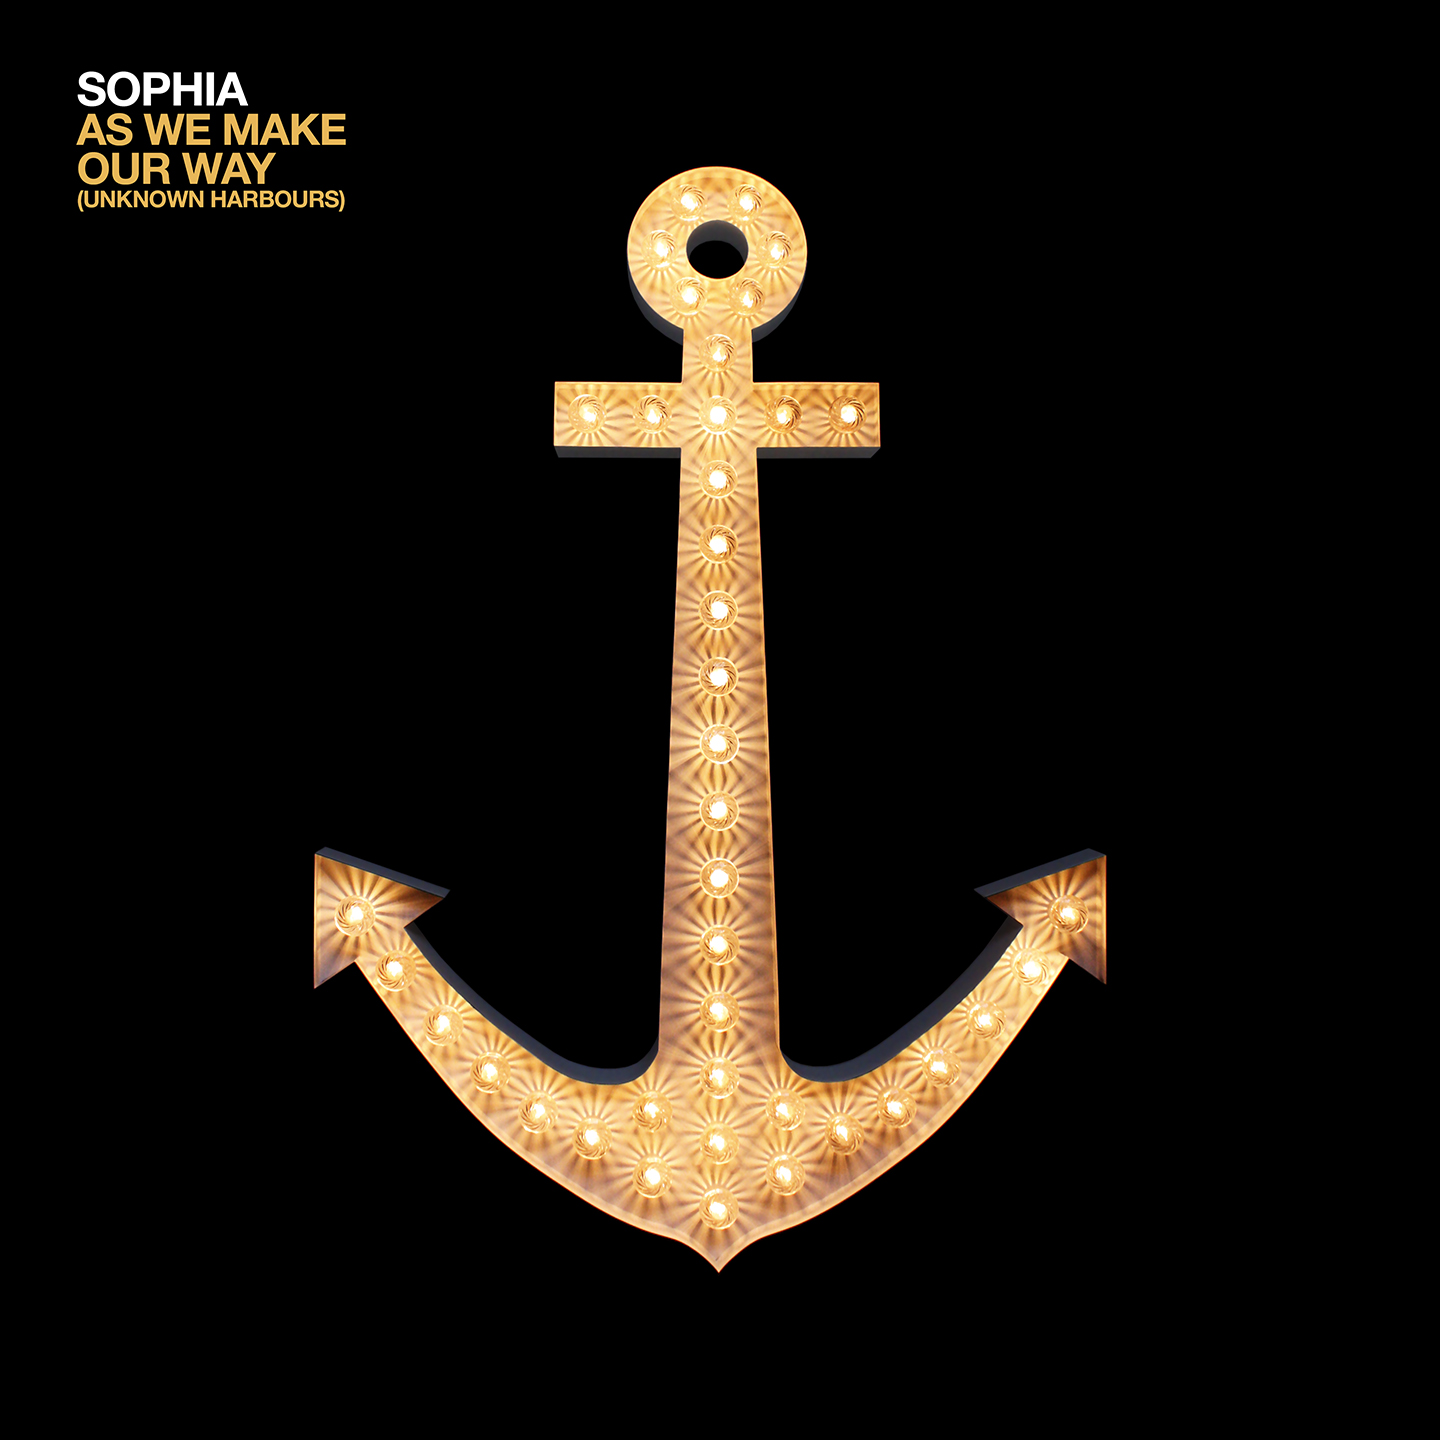 Sophia - As We Make Our Way (Unknown Harbours) - CD Album (Digipak) inc. immediate digital download - Sophia